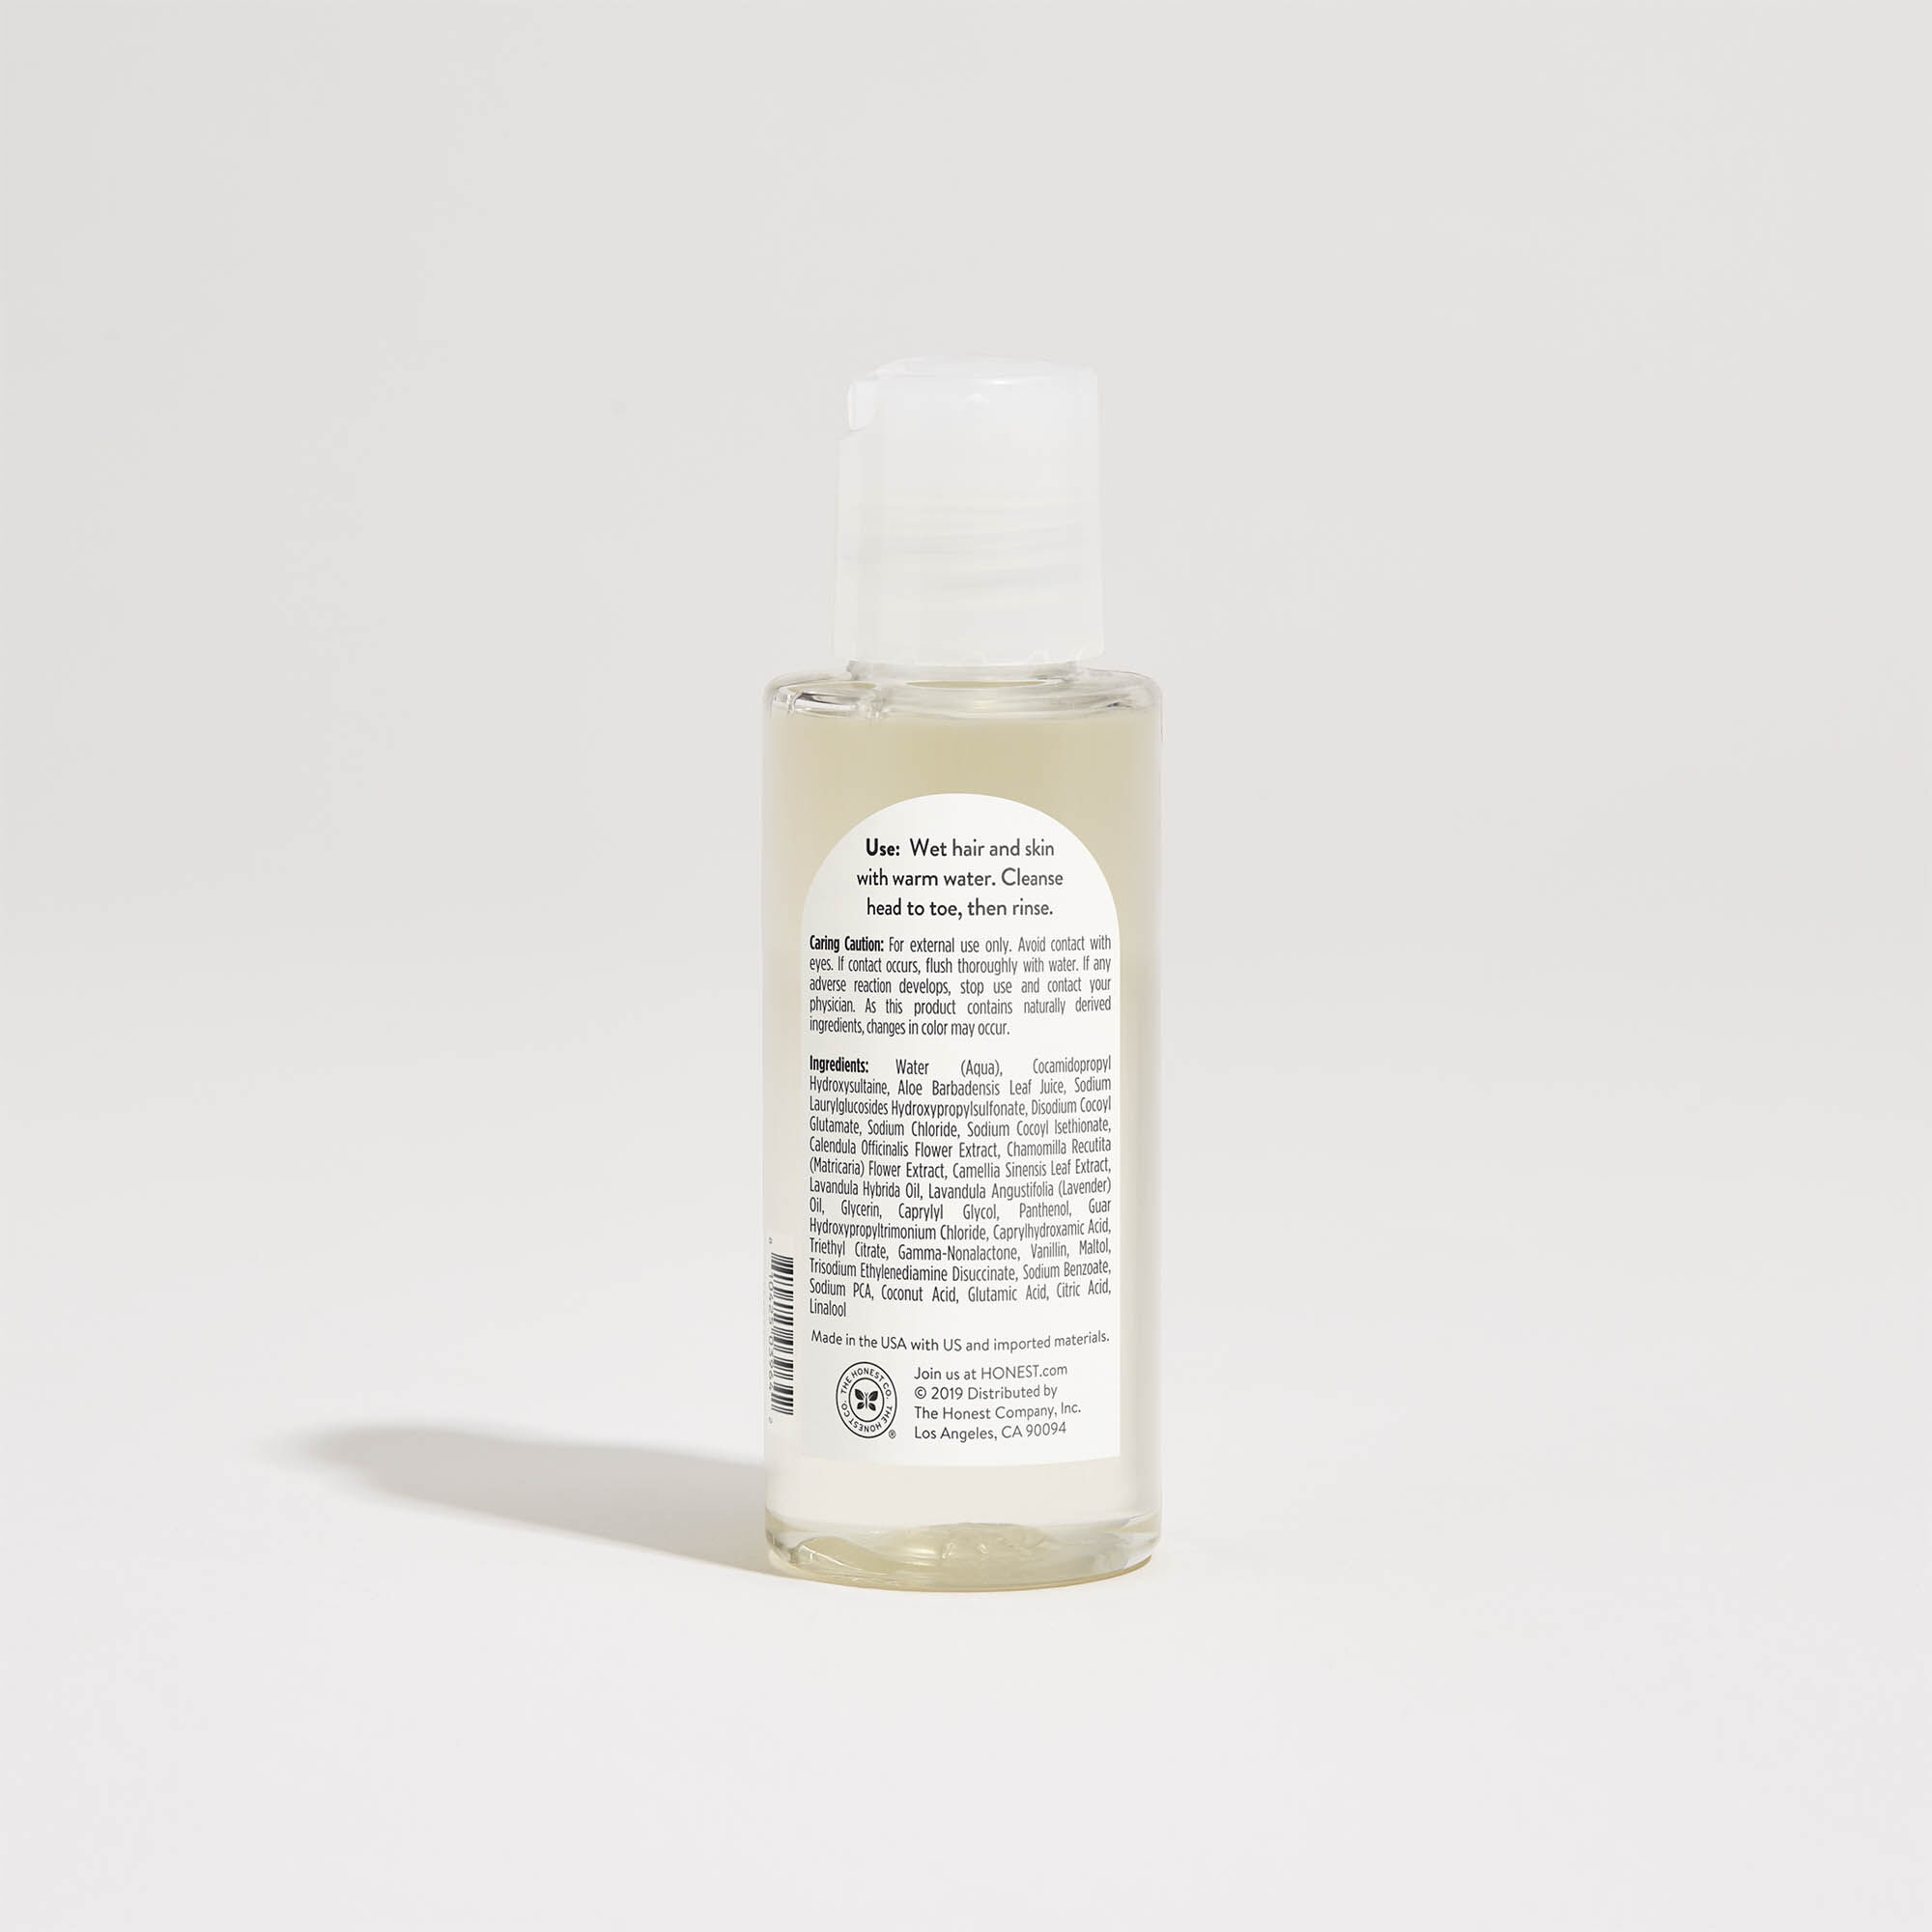 Lavender Scented Shampoo + Body Wash, back of product